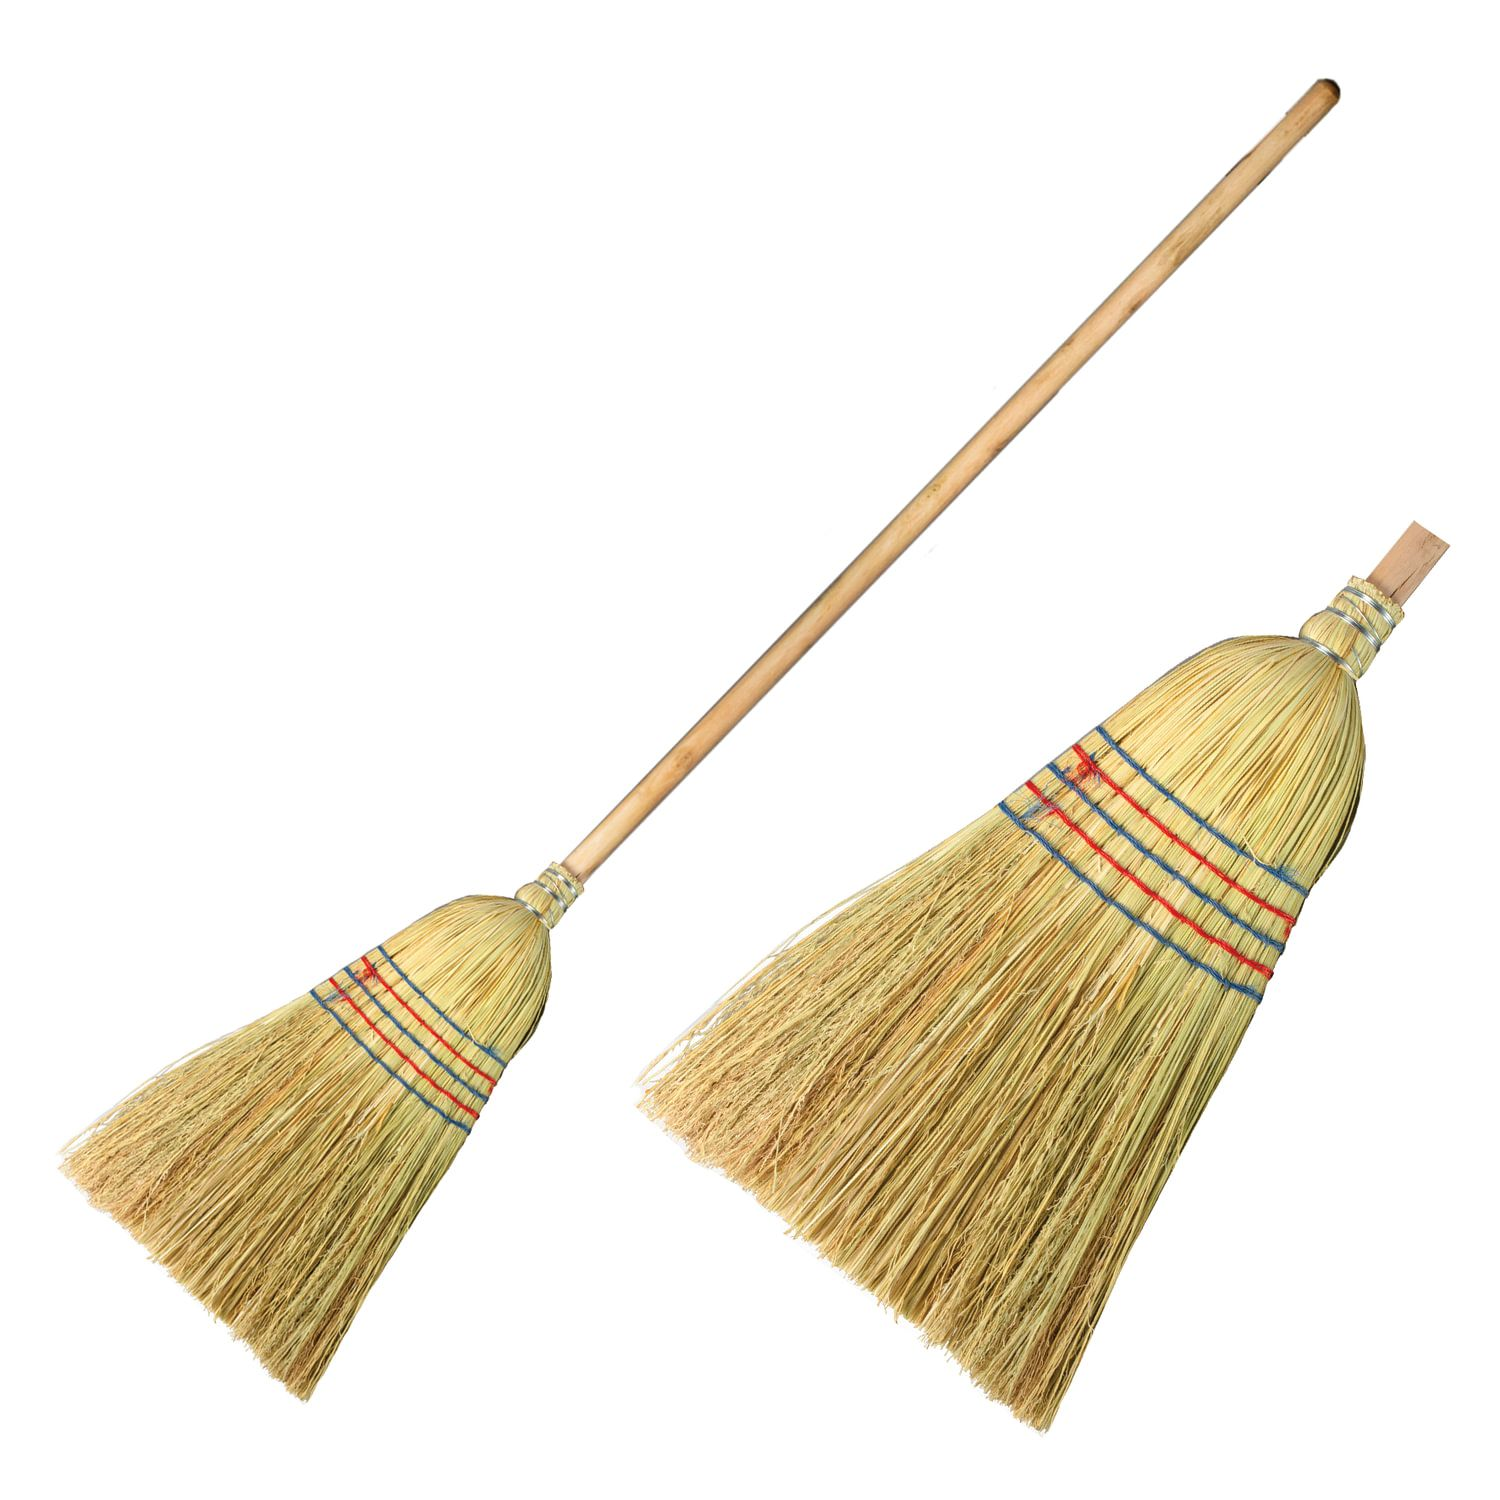 LIME / Sorghum broom-broom 2, natural, stitched, with a wooden handle 95 cm, large, 450х330 mm